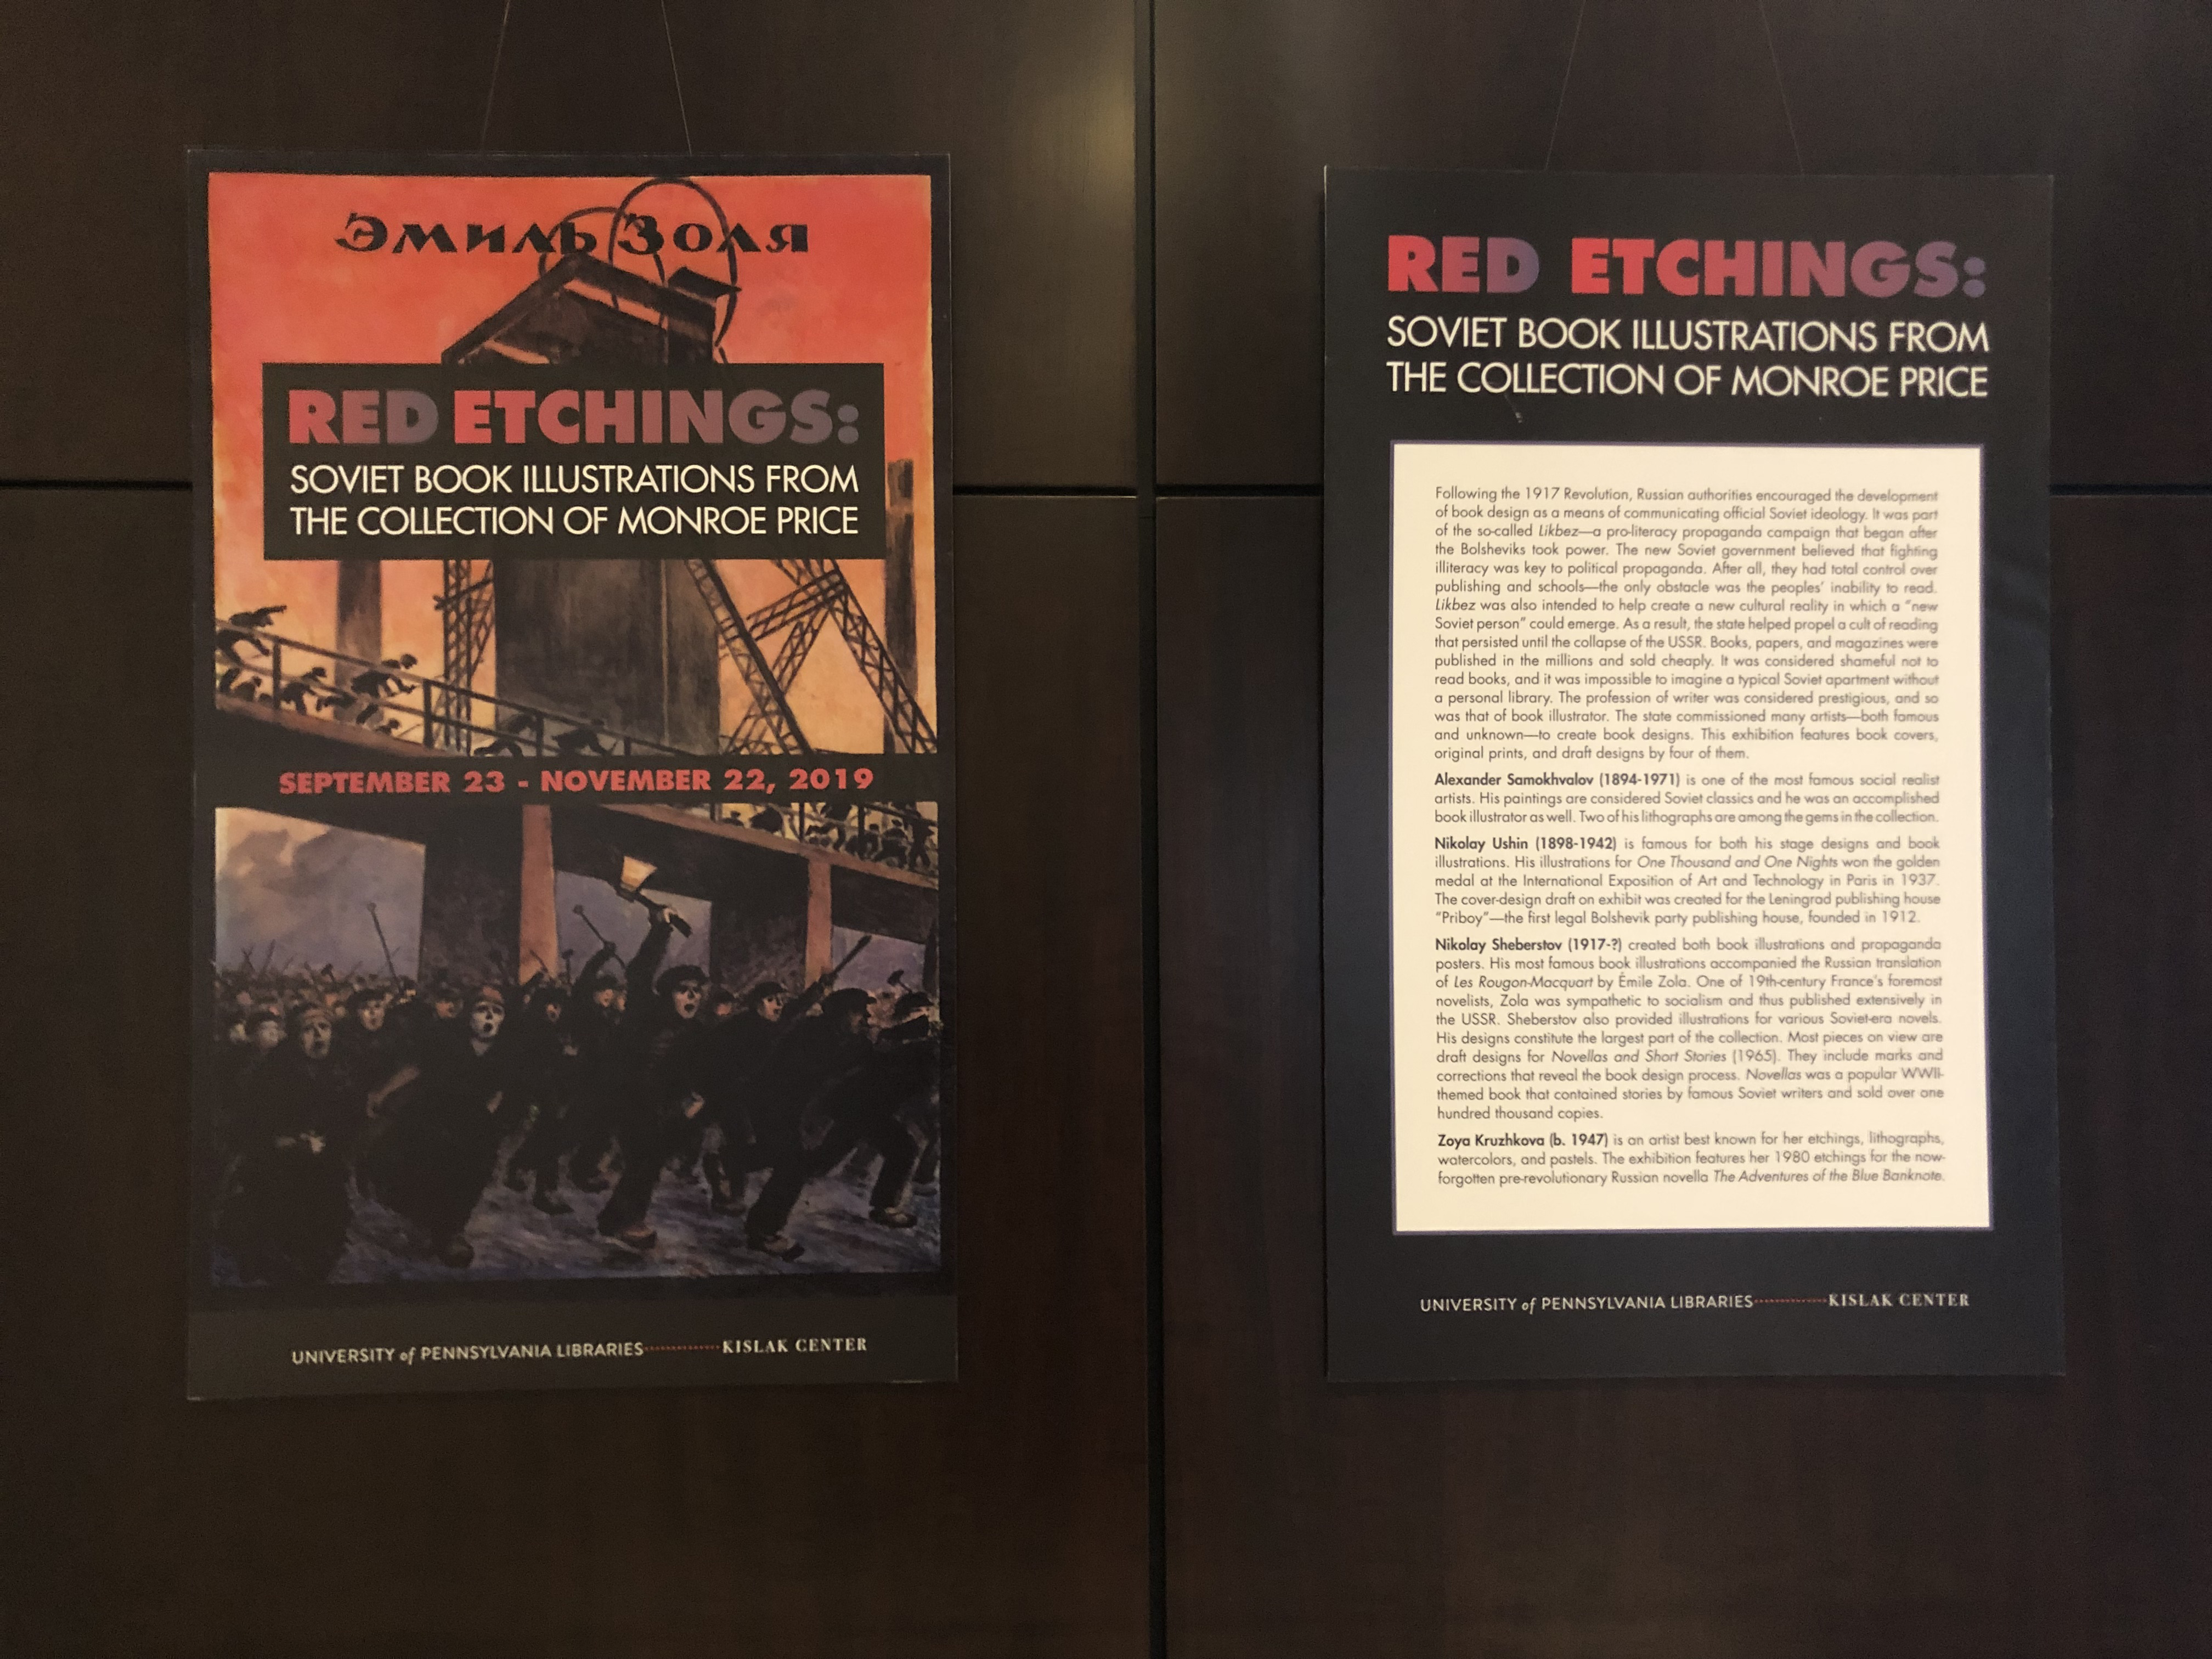 Red Etchings poster and introduction